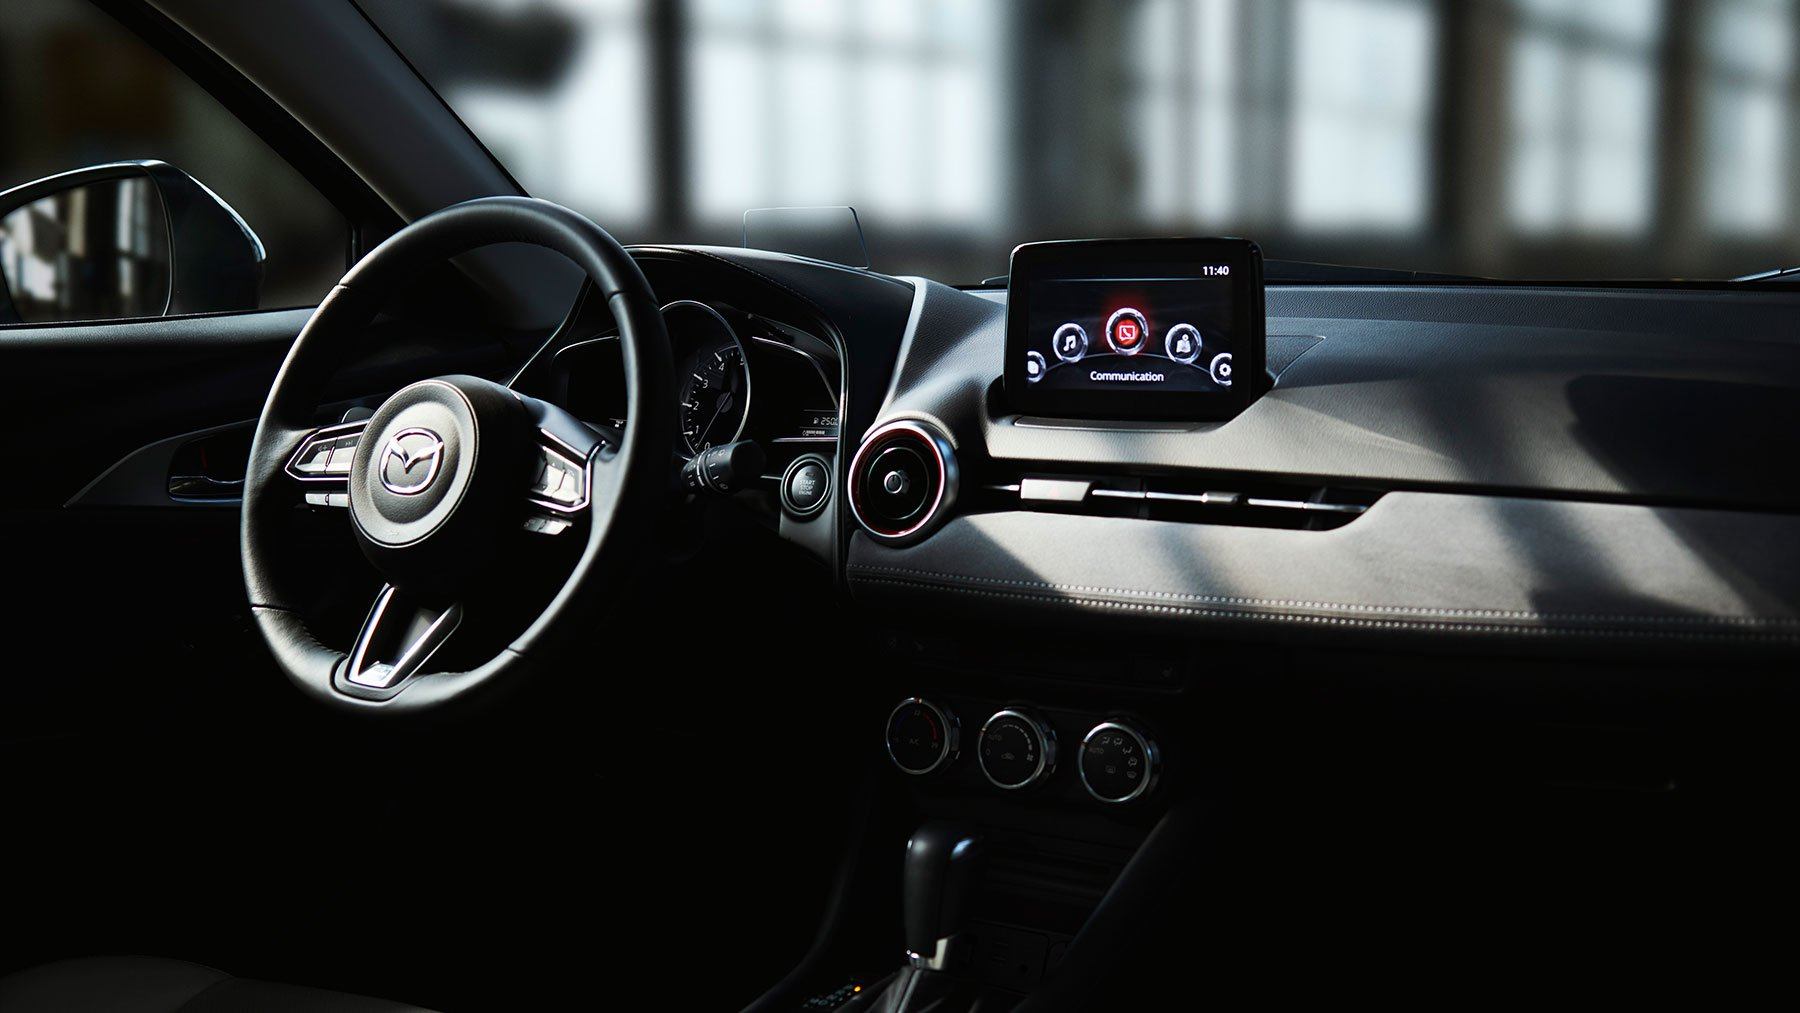 2019-mazda-cx-3-dashboard (2)